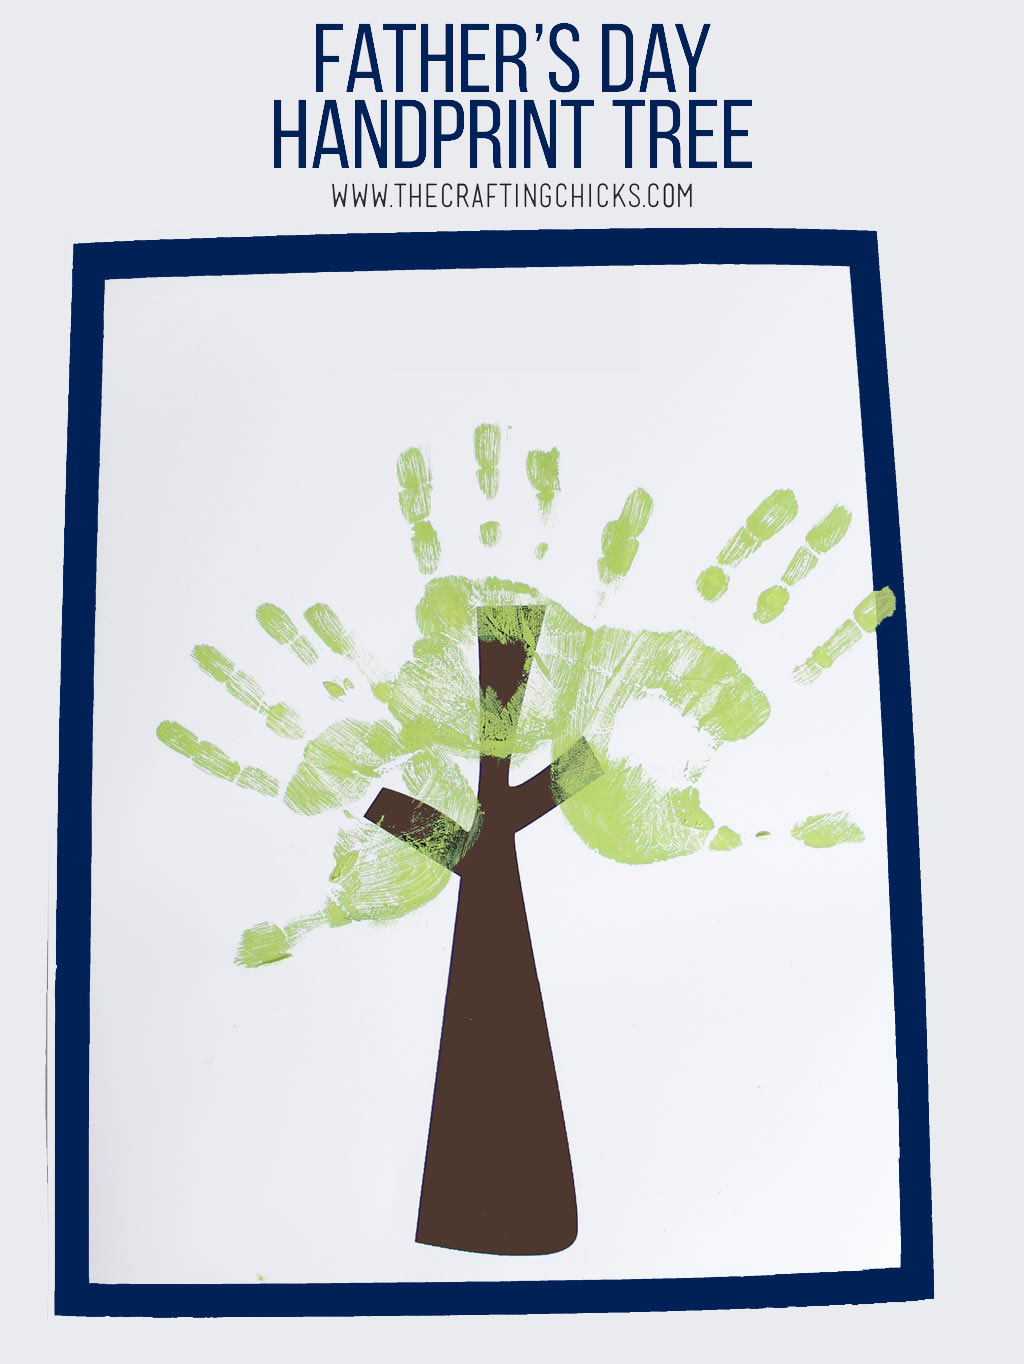 Father's Day Handprint Tree Free Printable for the best Father's Day Gift!